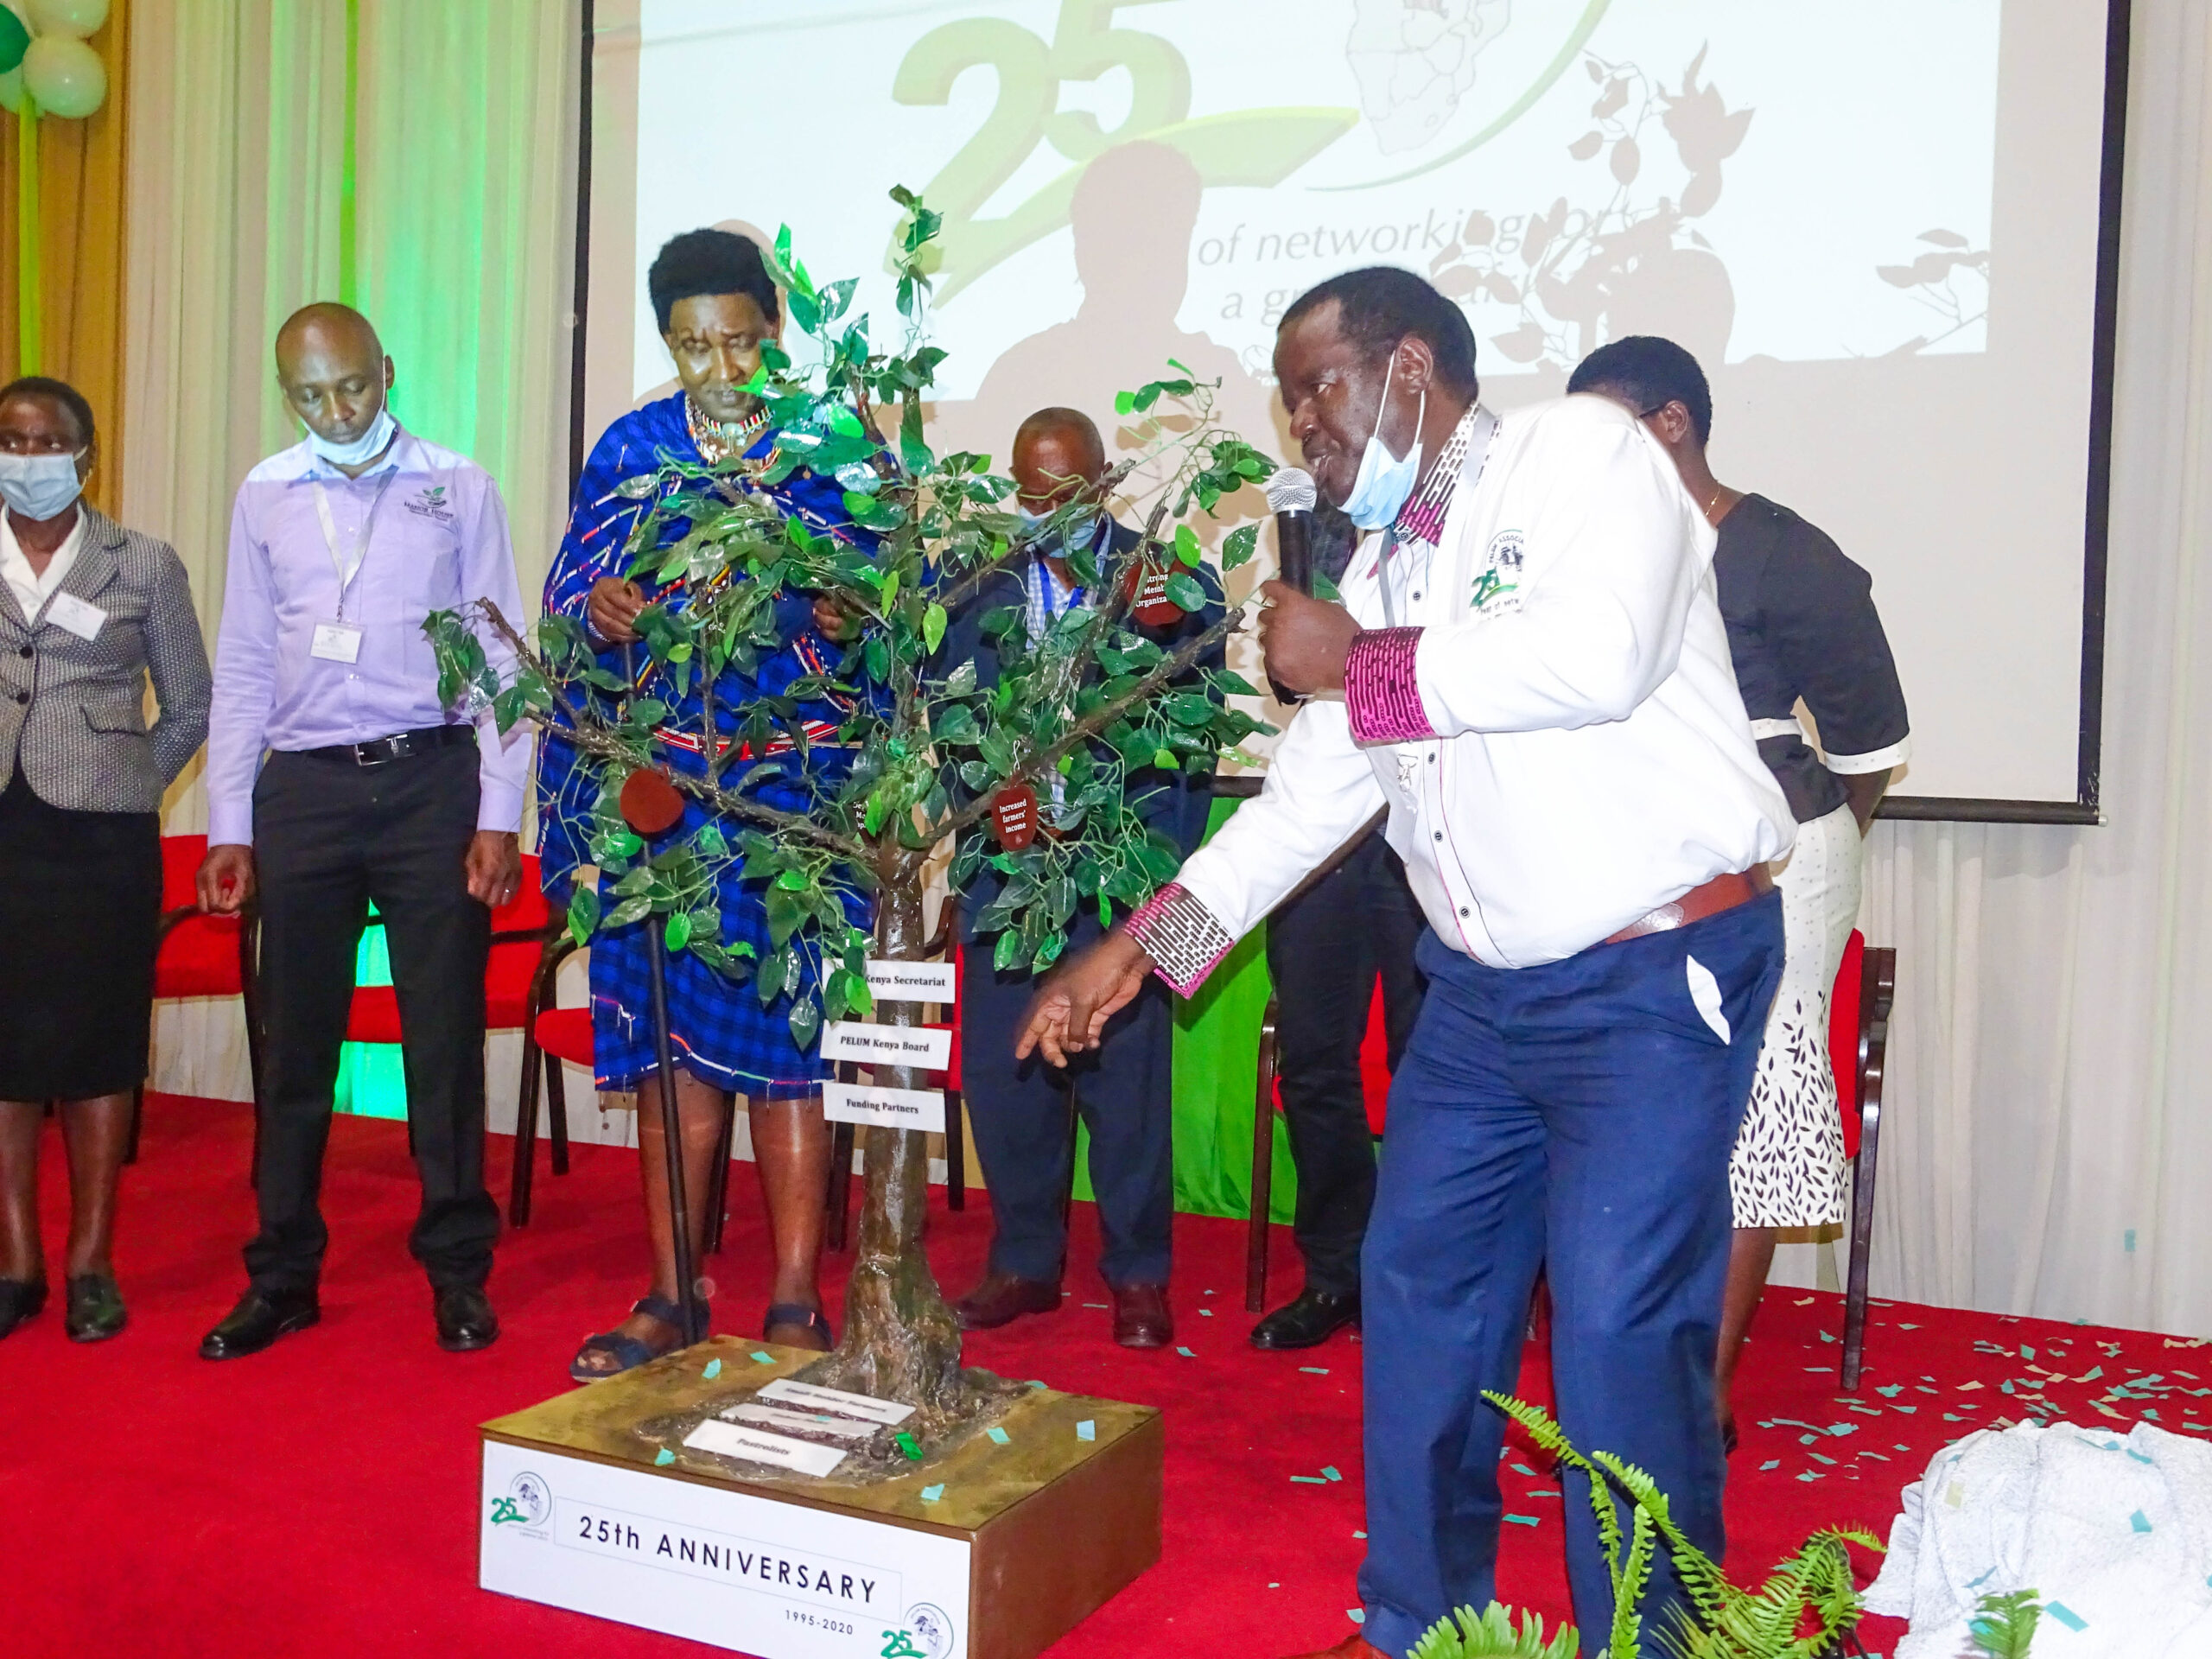 Unveiling of the symbolic tree monument during the PELUM Kenya's 25th Anniversary Celebrations